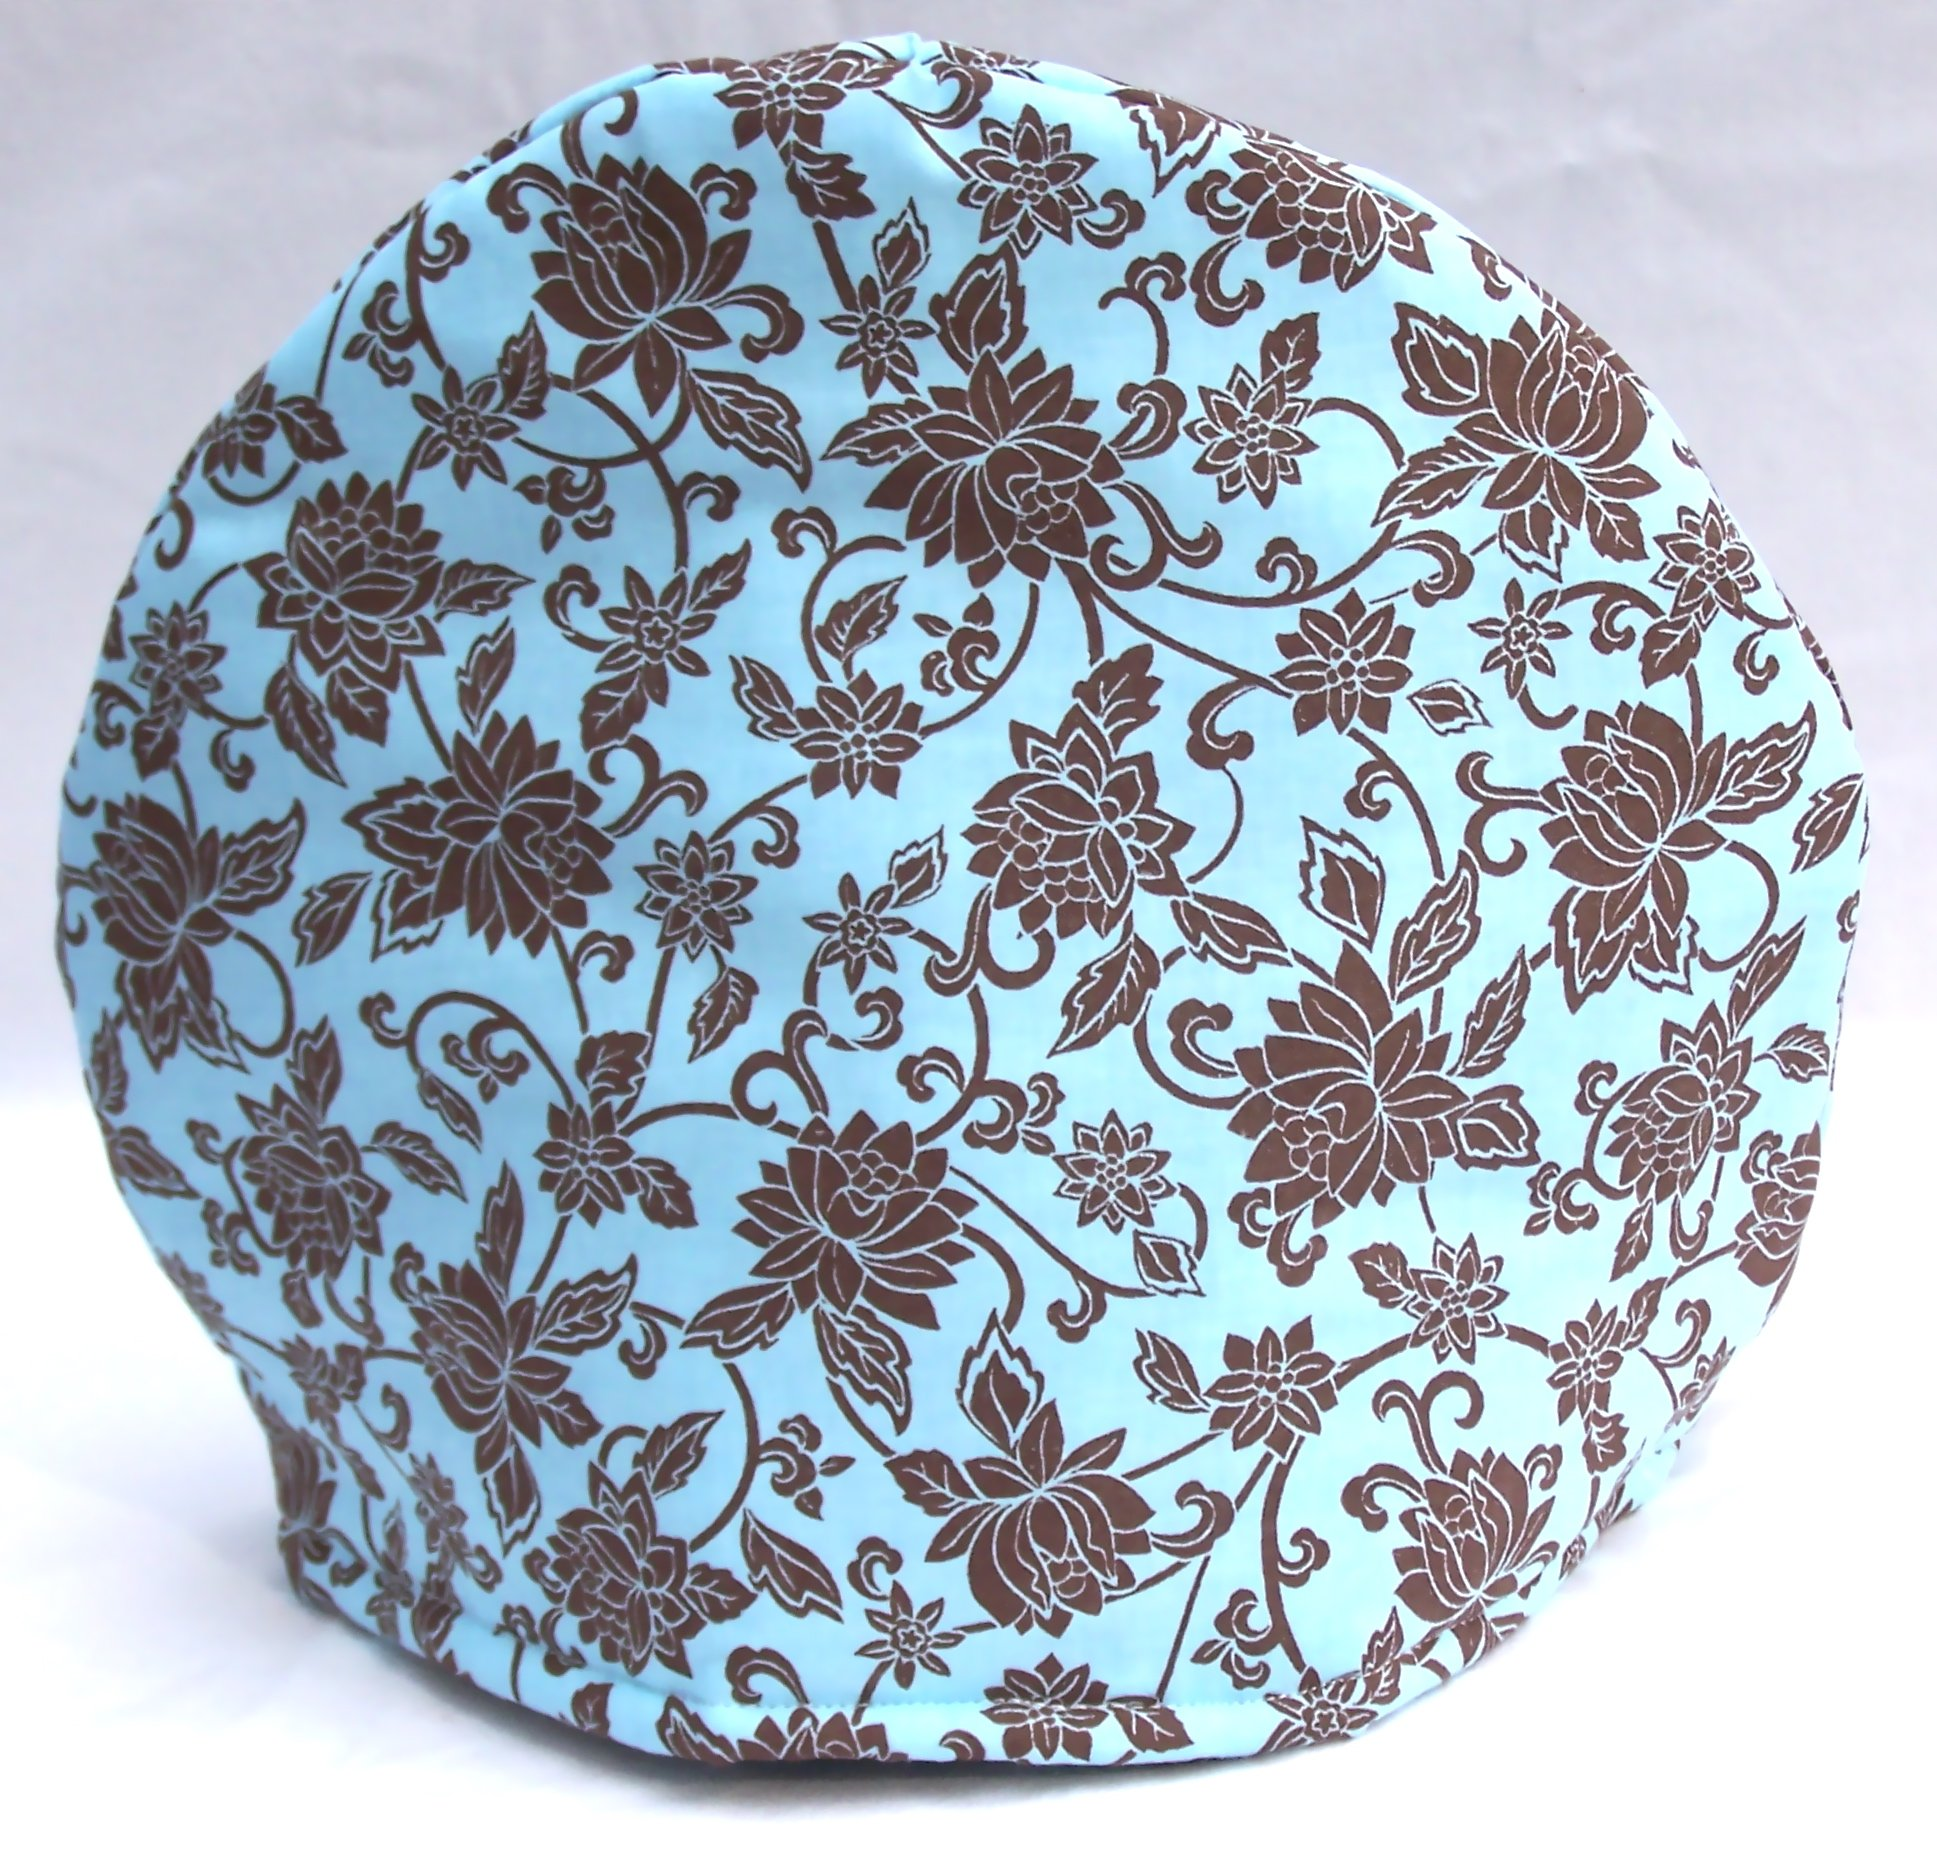 Handmade Brown and Tiffany Teal Toile Print Fabric Tea Cozy Lined and Padded Cosy